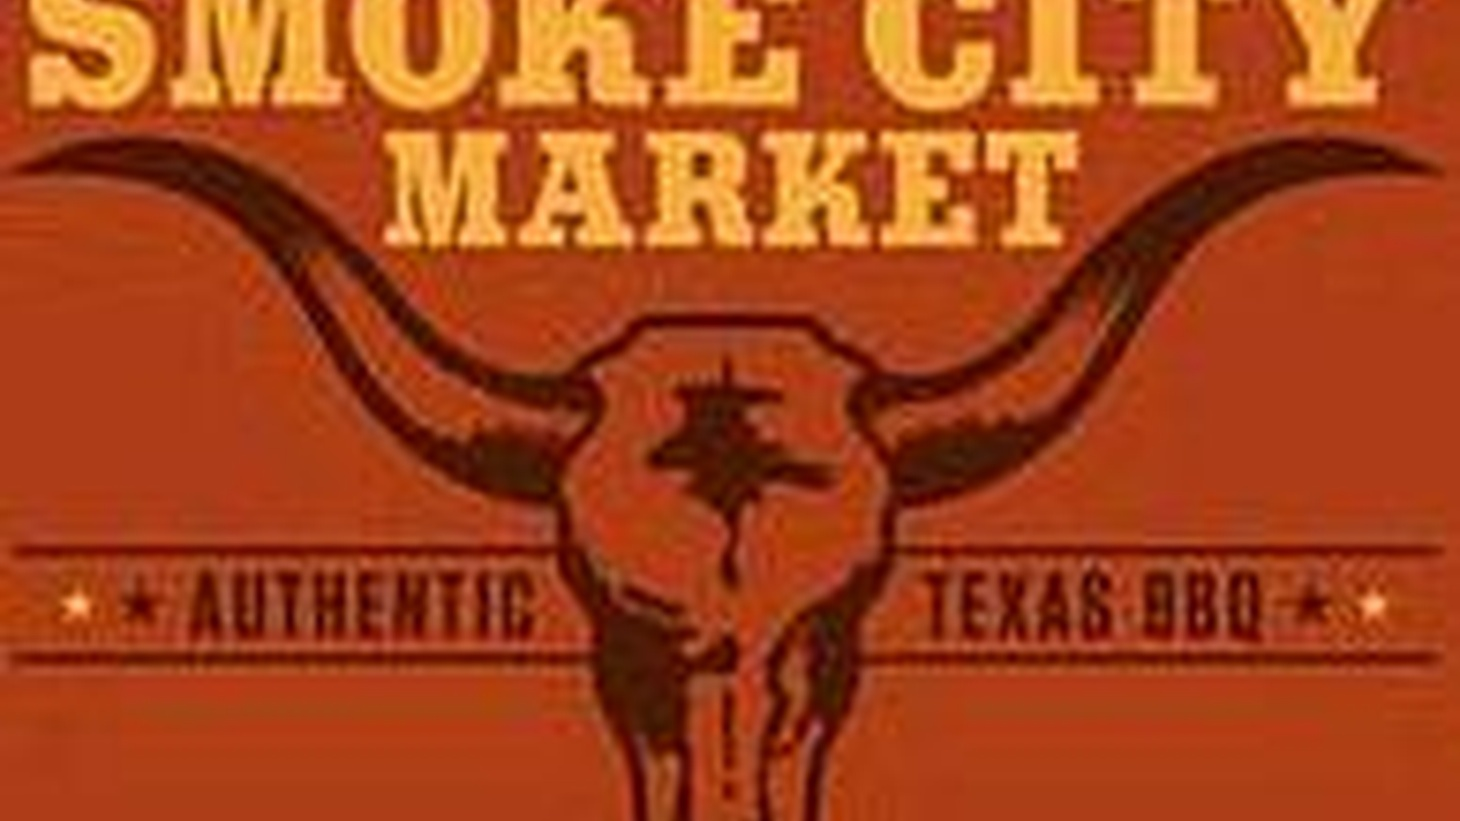 This week's restaurant recommendation from the LA Weekly's Jonathan Gold is Smoke City Market, serving Texas barbecue in Sherman Oaks...